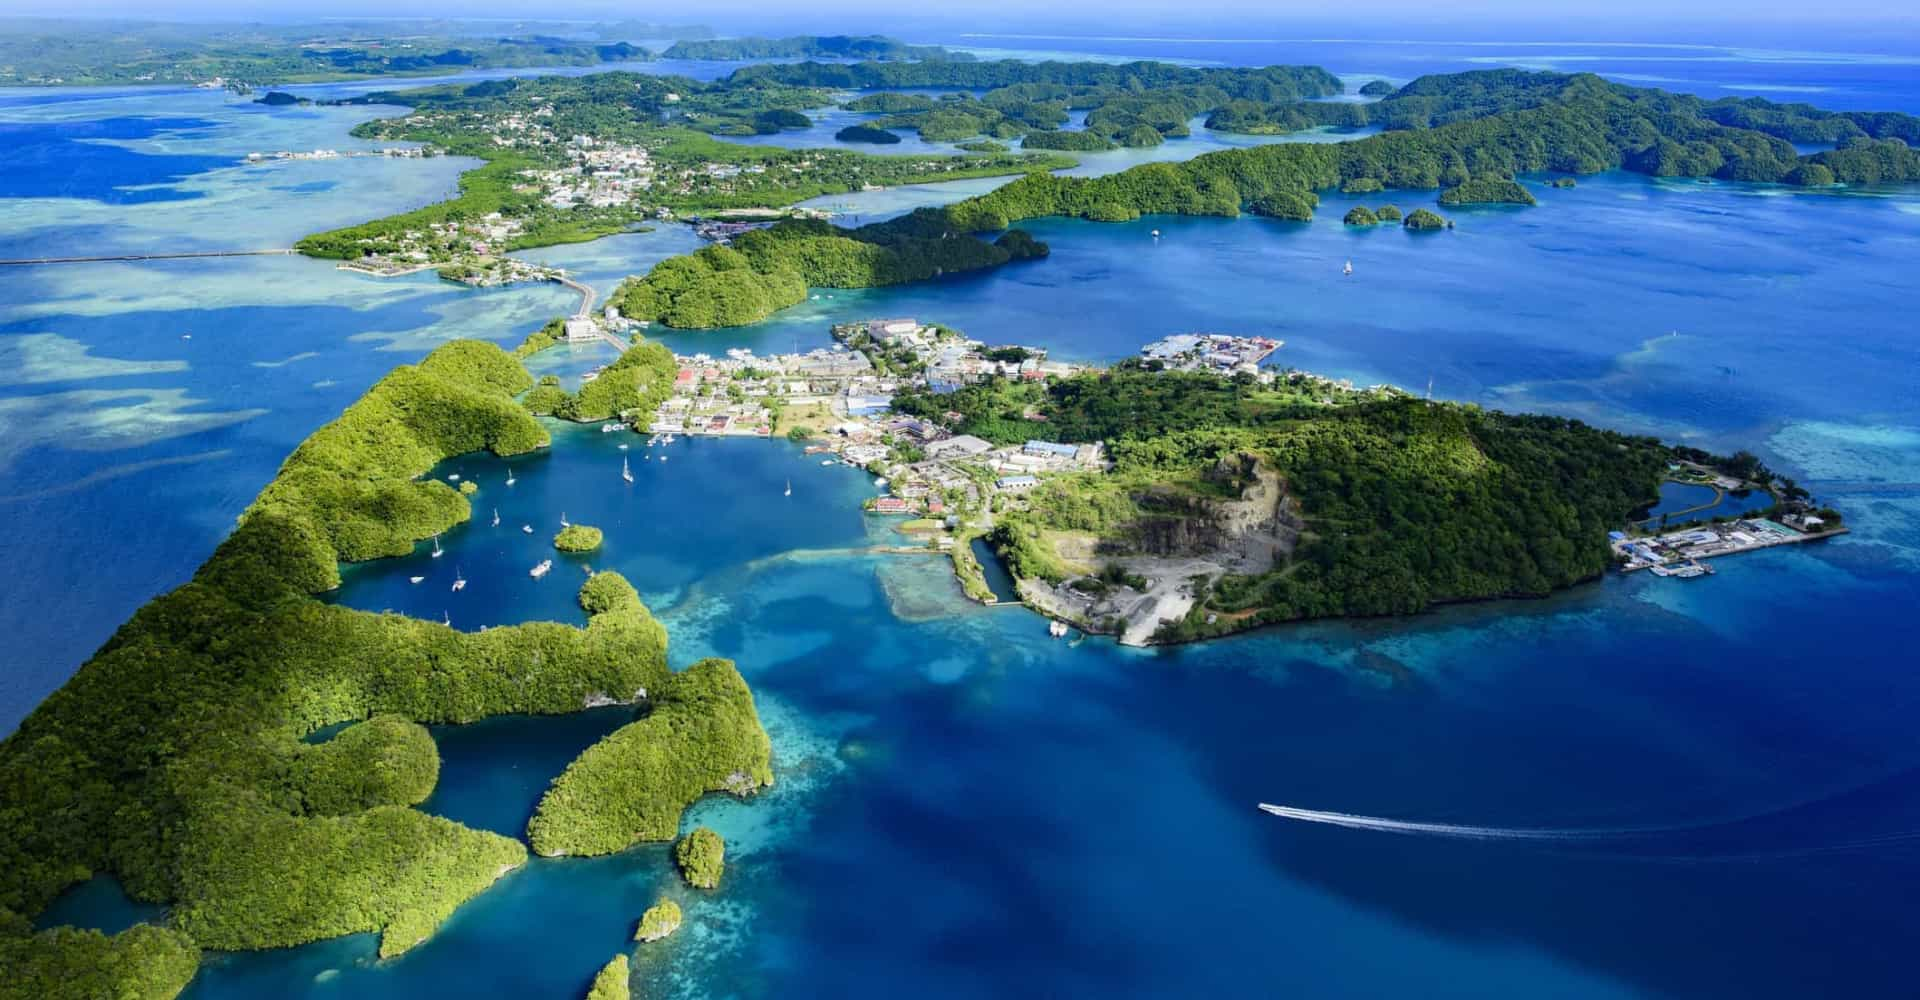 The world's most stunning archipelagos